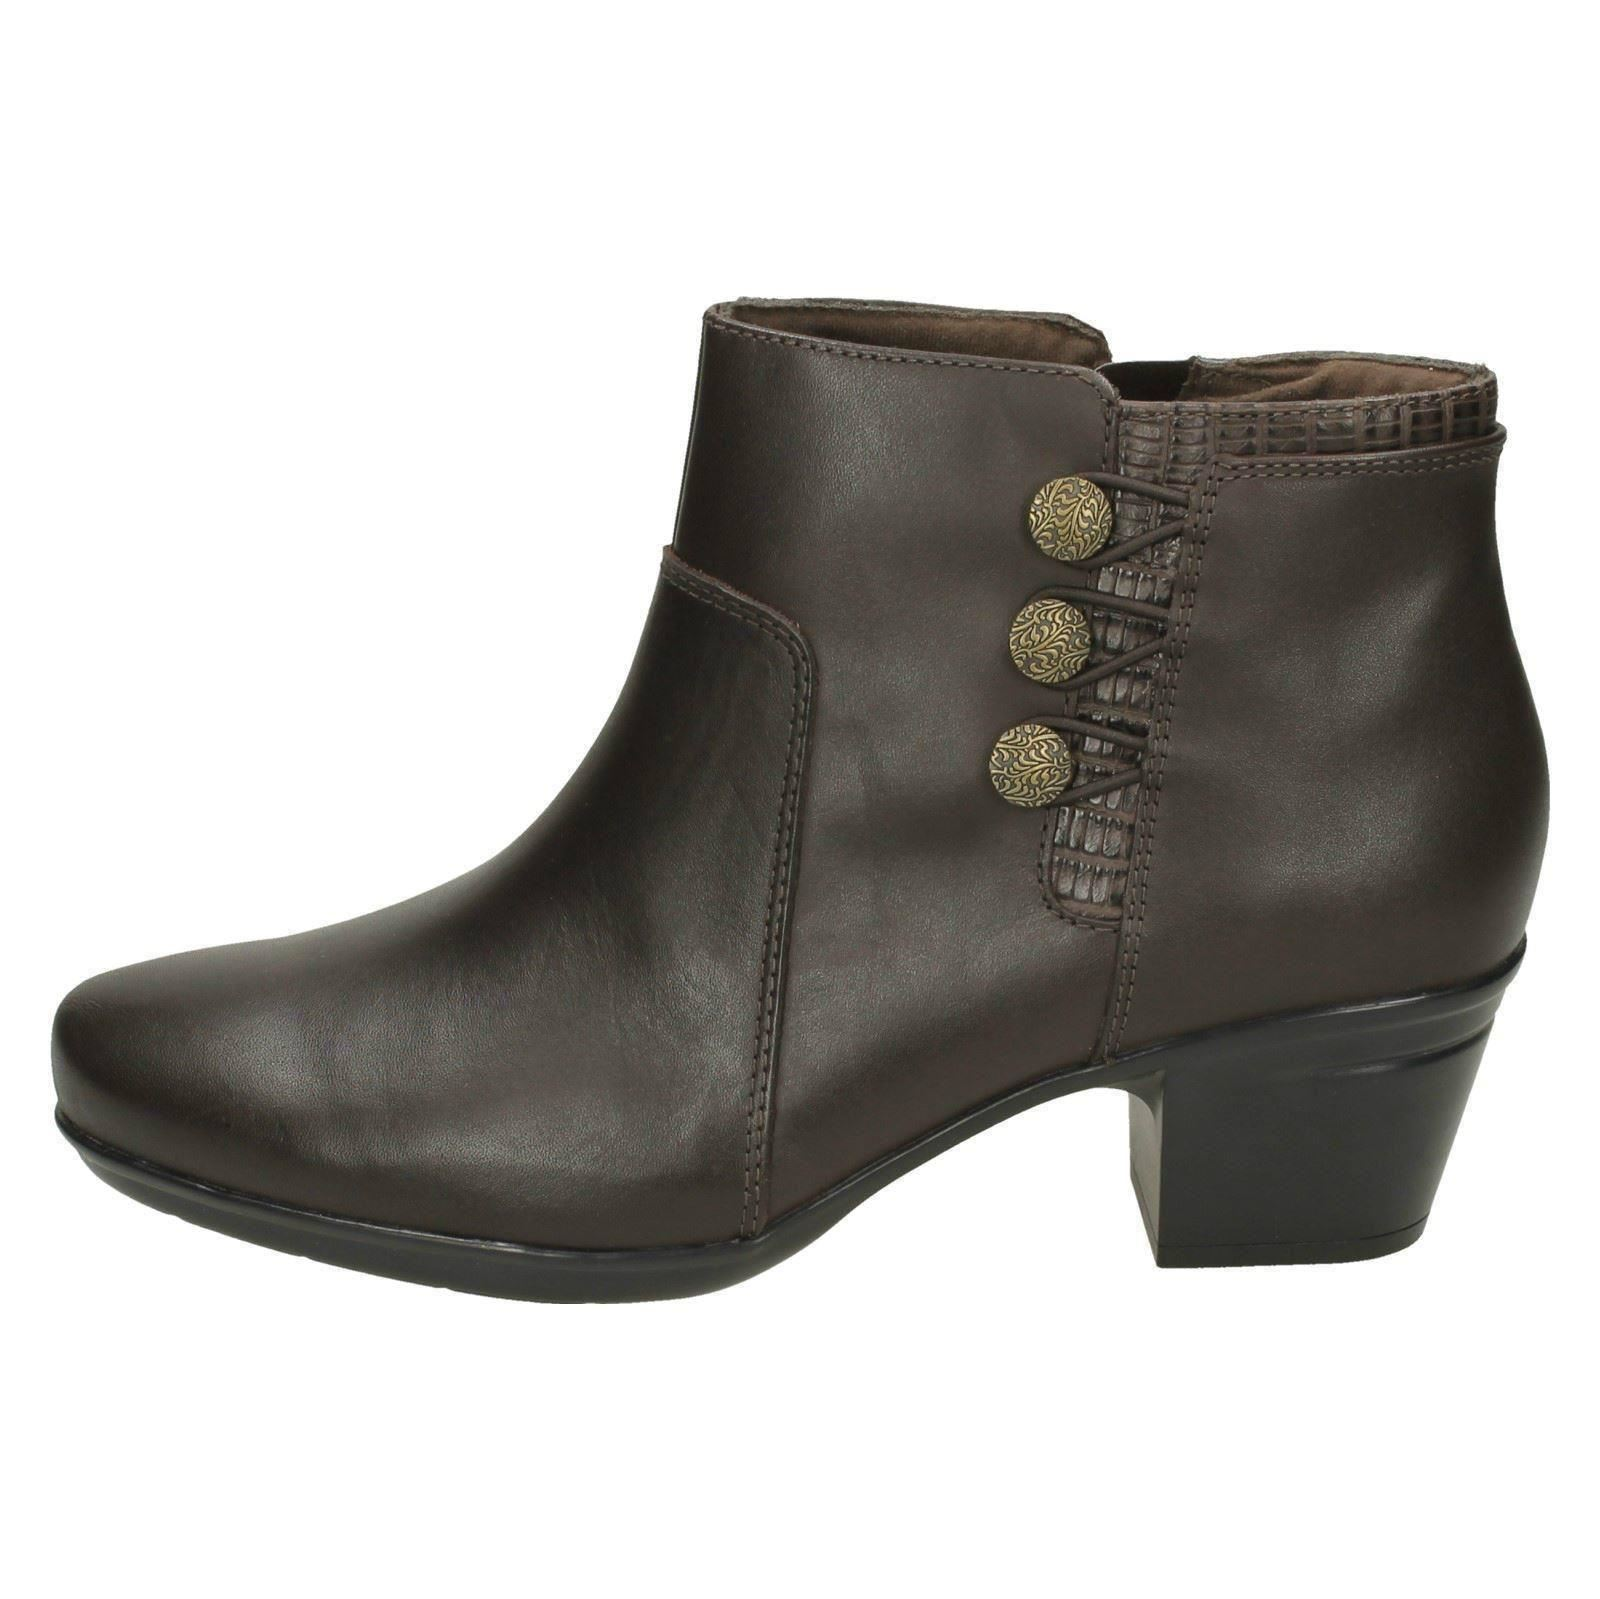 Ladies Clarks Emslie Monet Leather Smart Ankle Boots E Fitting